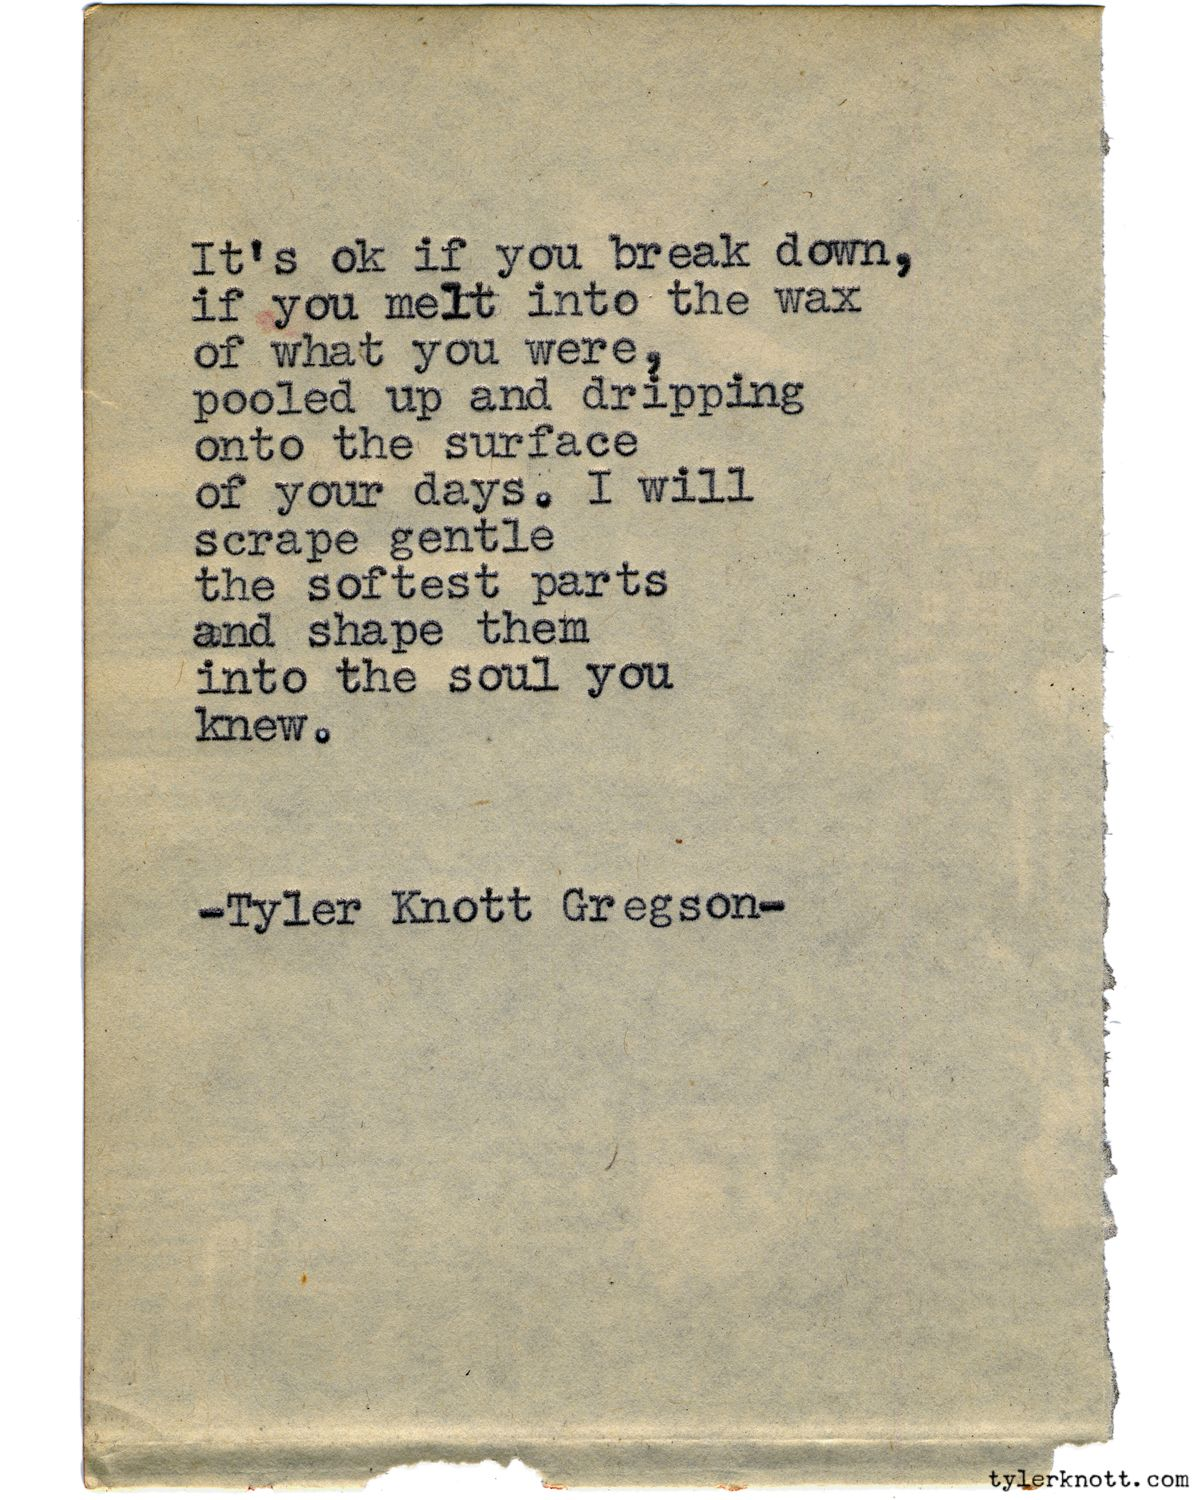 Typewriter Series 1189 By Tyler Knott Gregson Chasers Of The